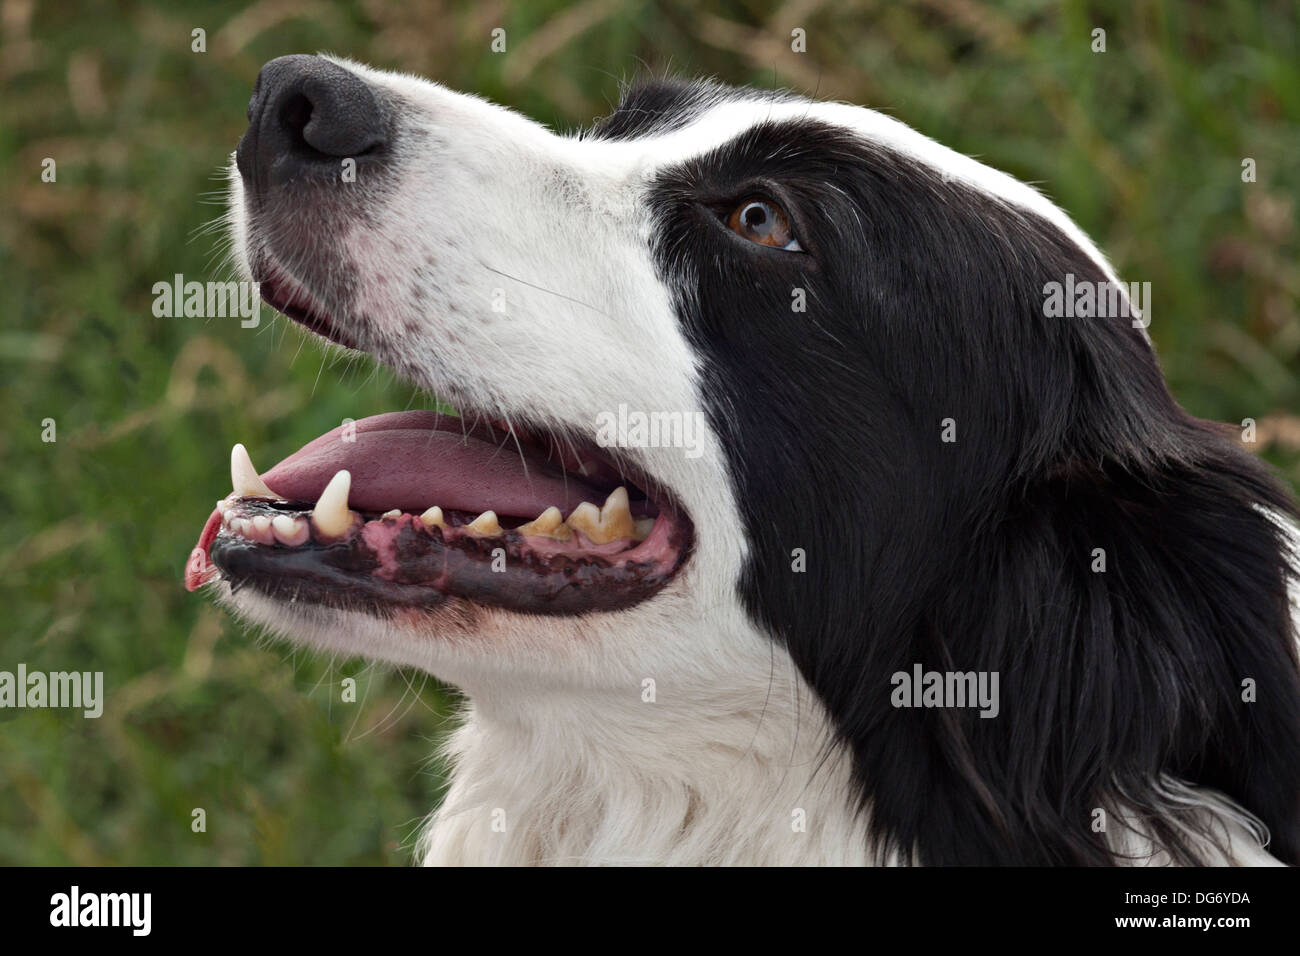 head shot of classically marked black and white border collie dog looking up to handler with expectant expression - Stock Image